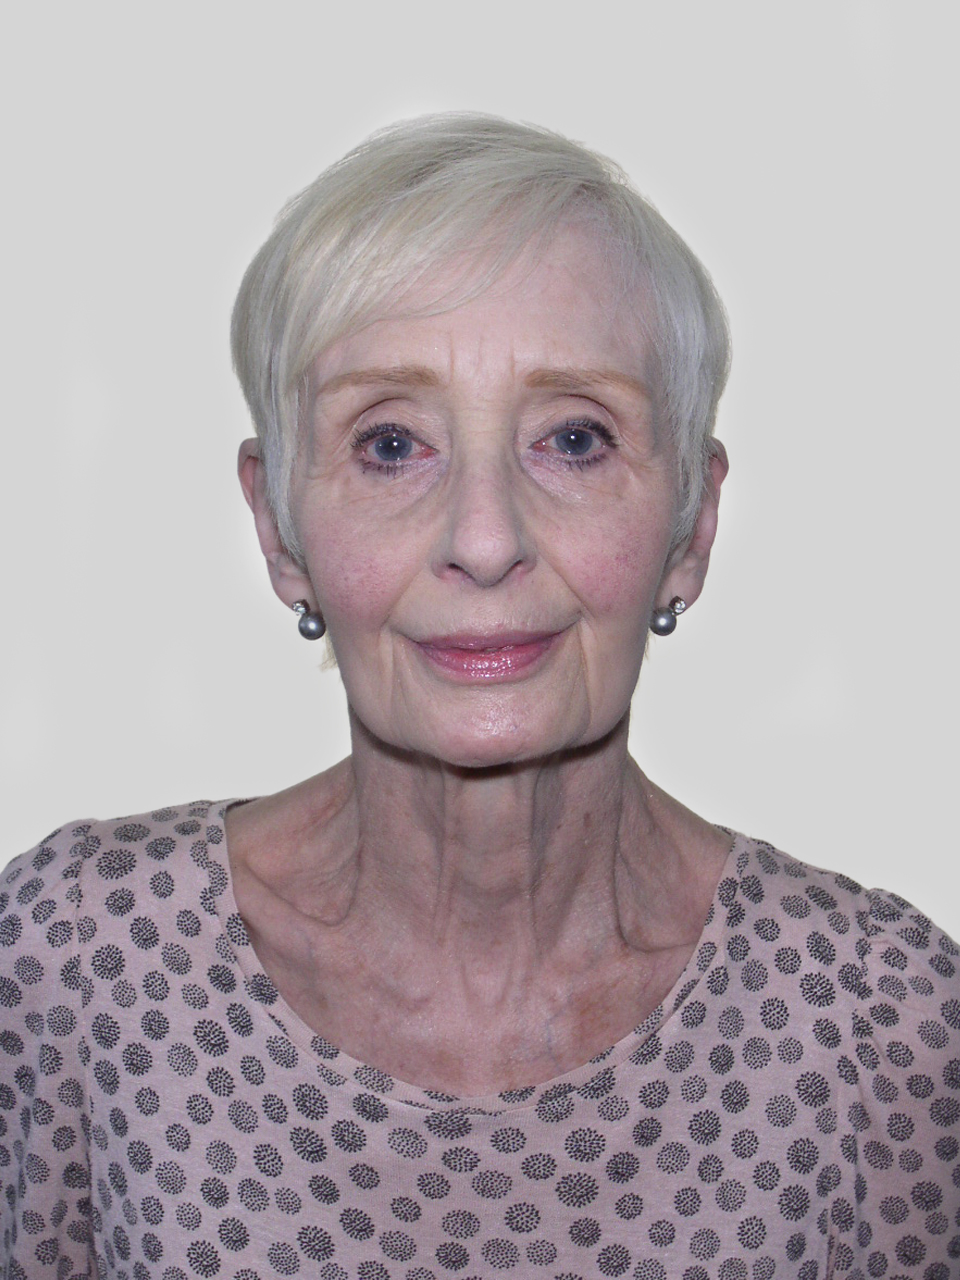 A picture of Rosaleen who has cropped, grey hair